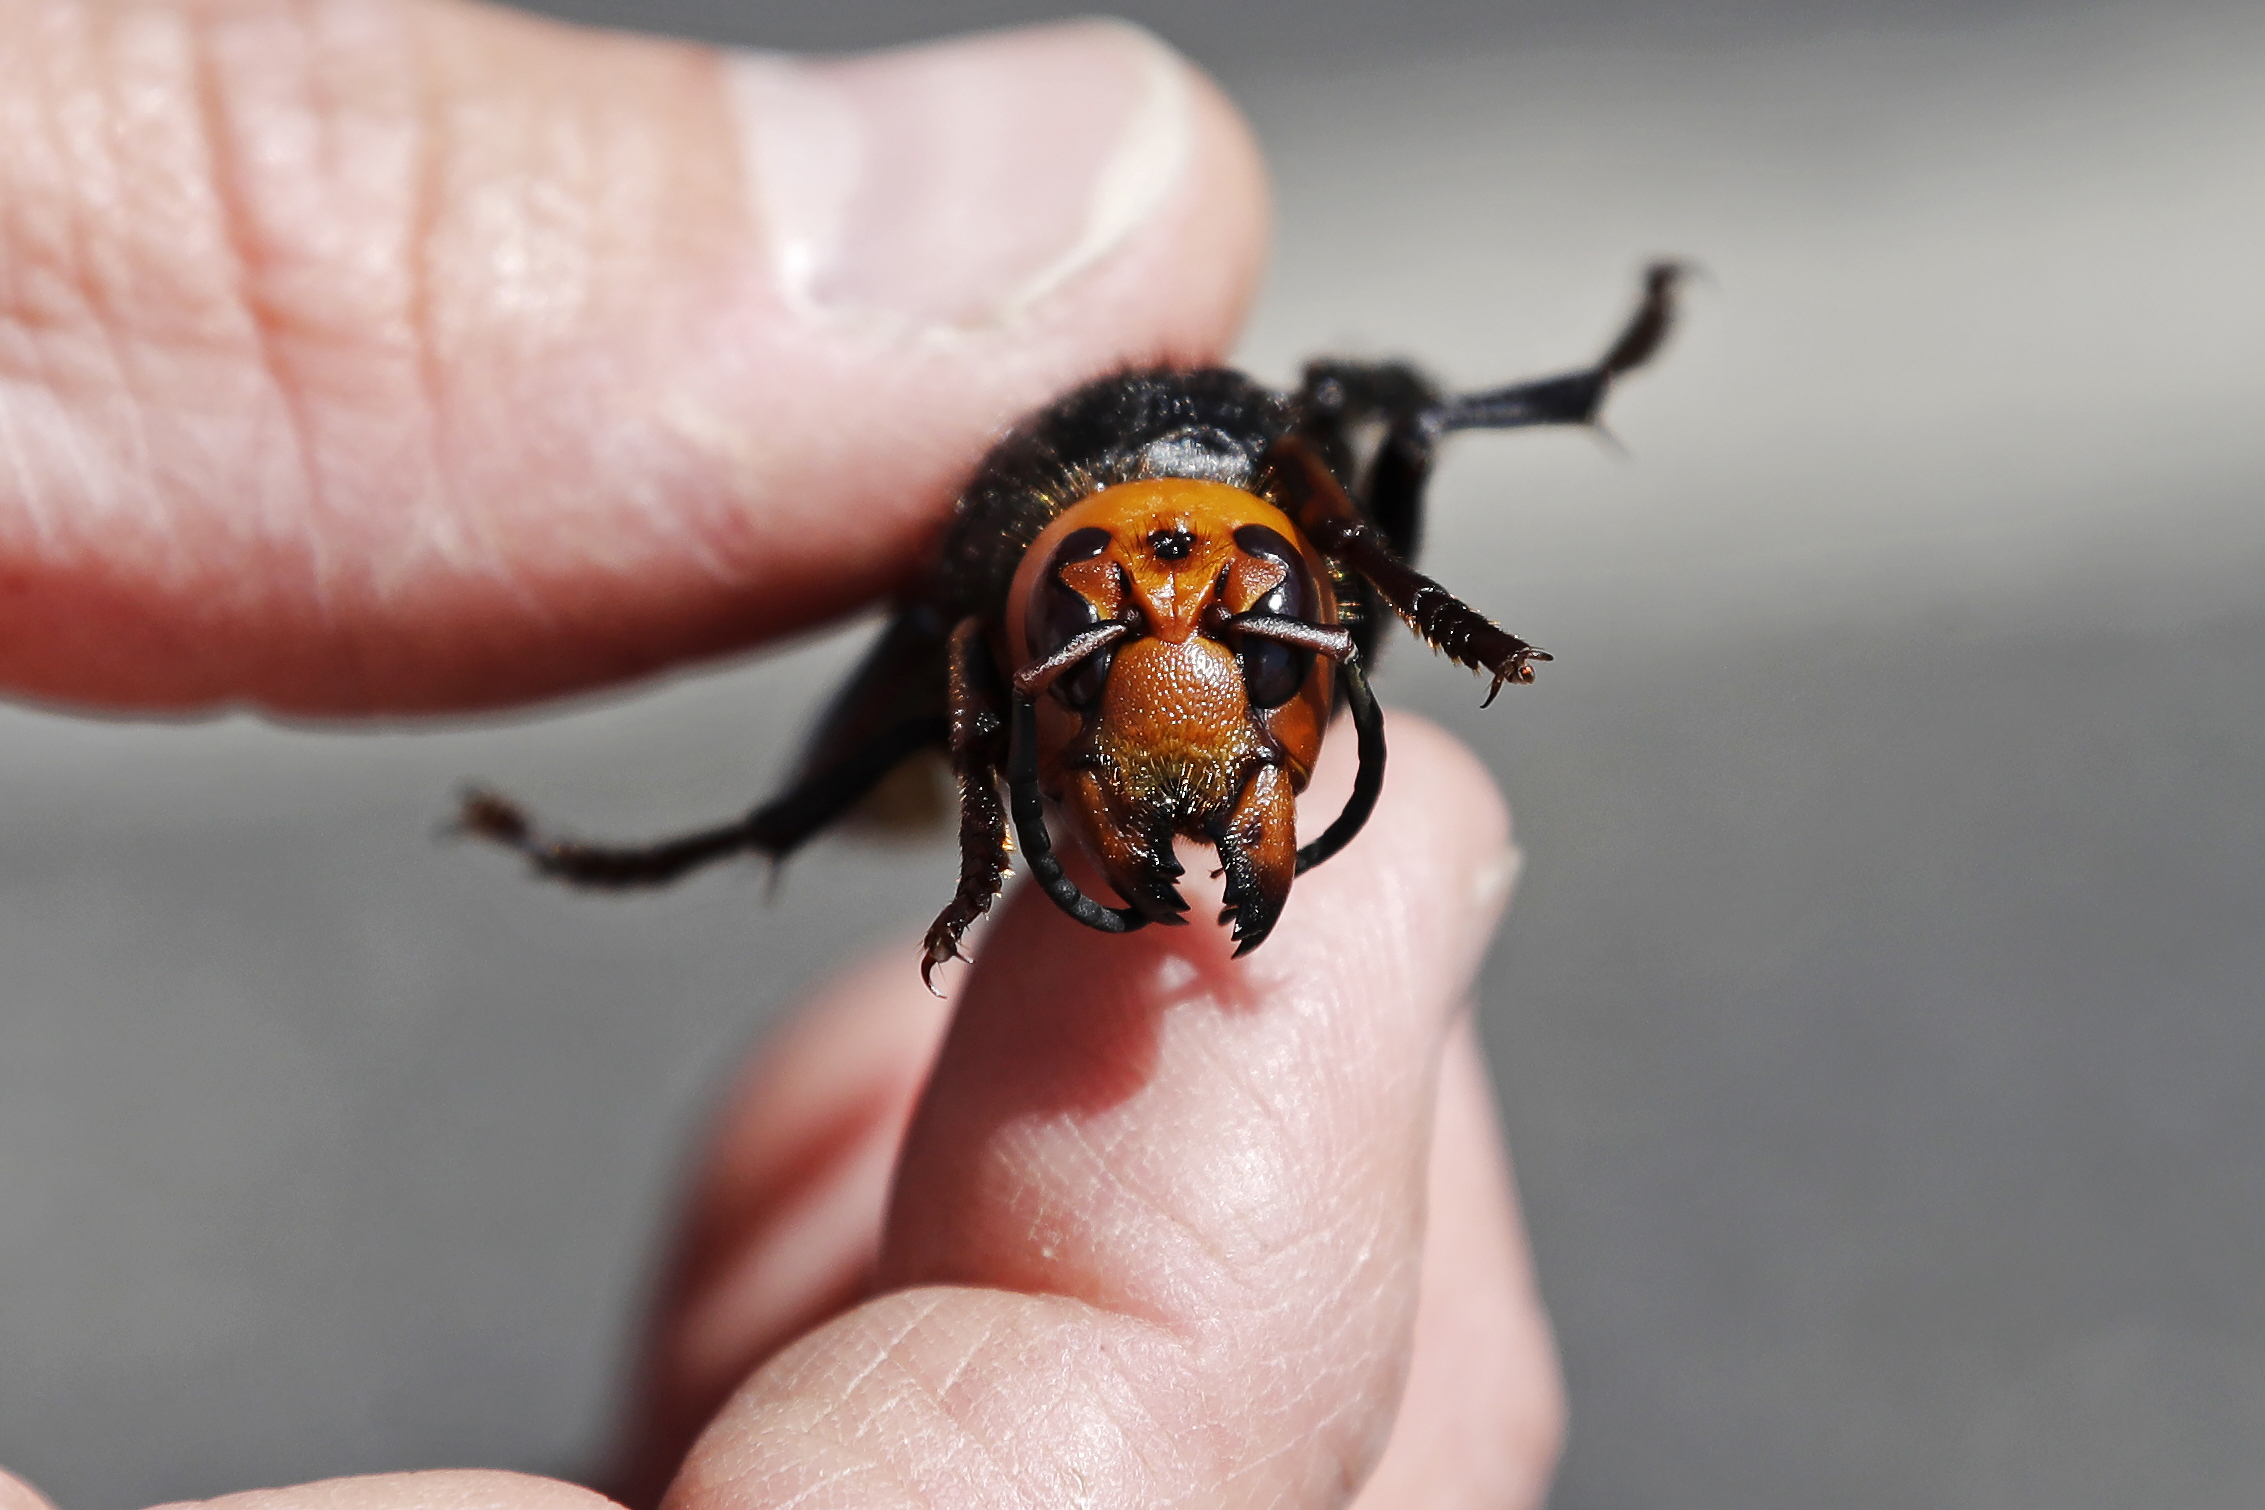 Asian giant hornets' nest found in Whatcom County